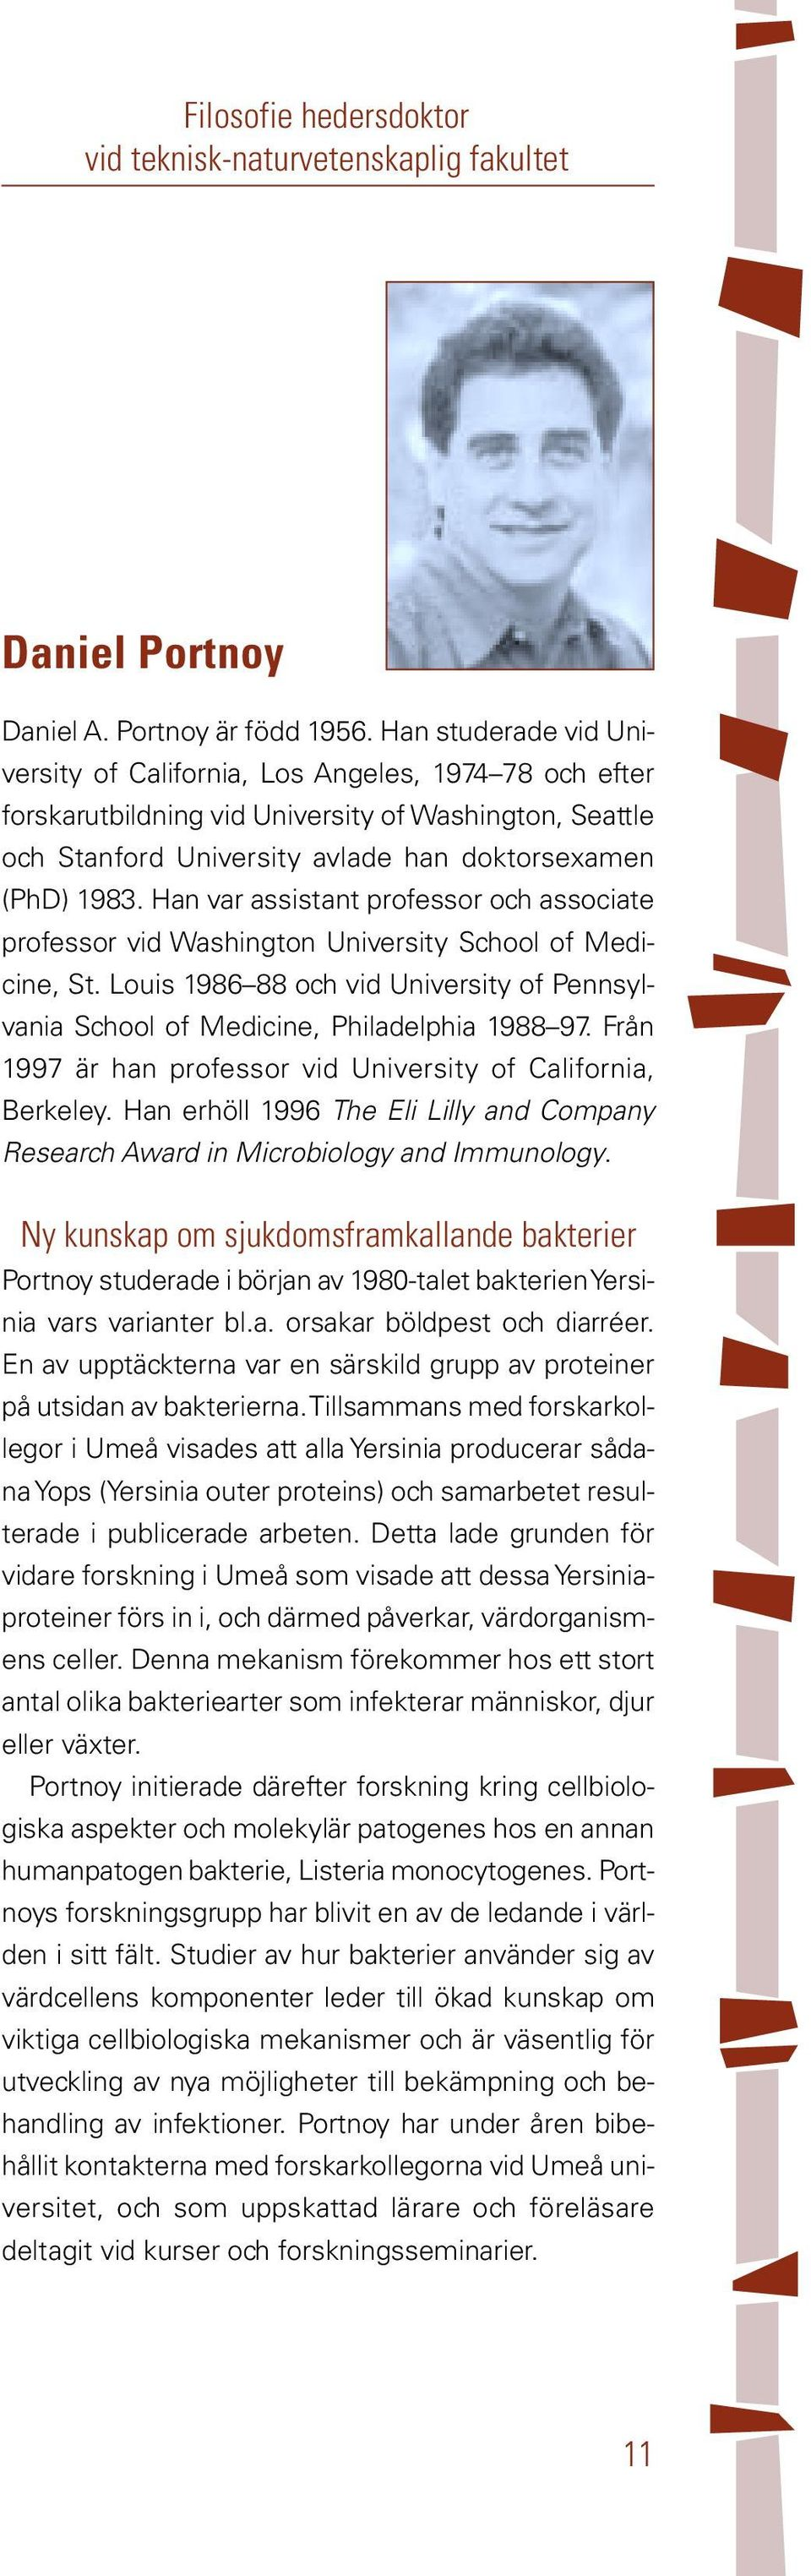 Han var assistant professor och associate professor vid Washington University School of Medicine, St. Louis 1986 88 och vid University of Pennsylvania School of Medicine, Philadelphia 1988 97.